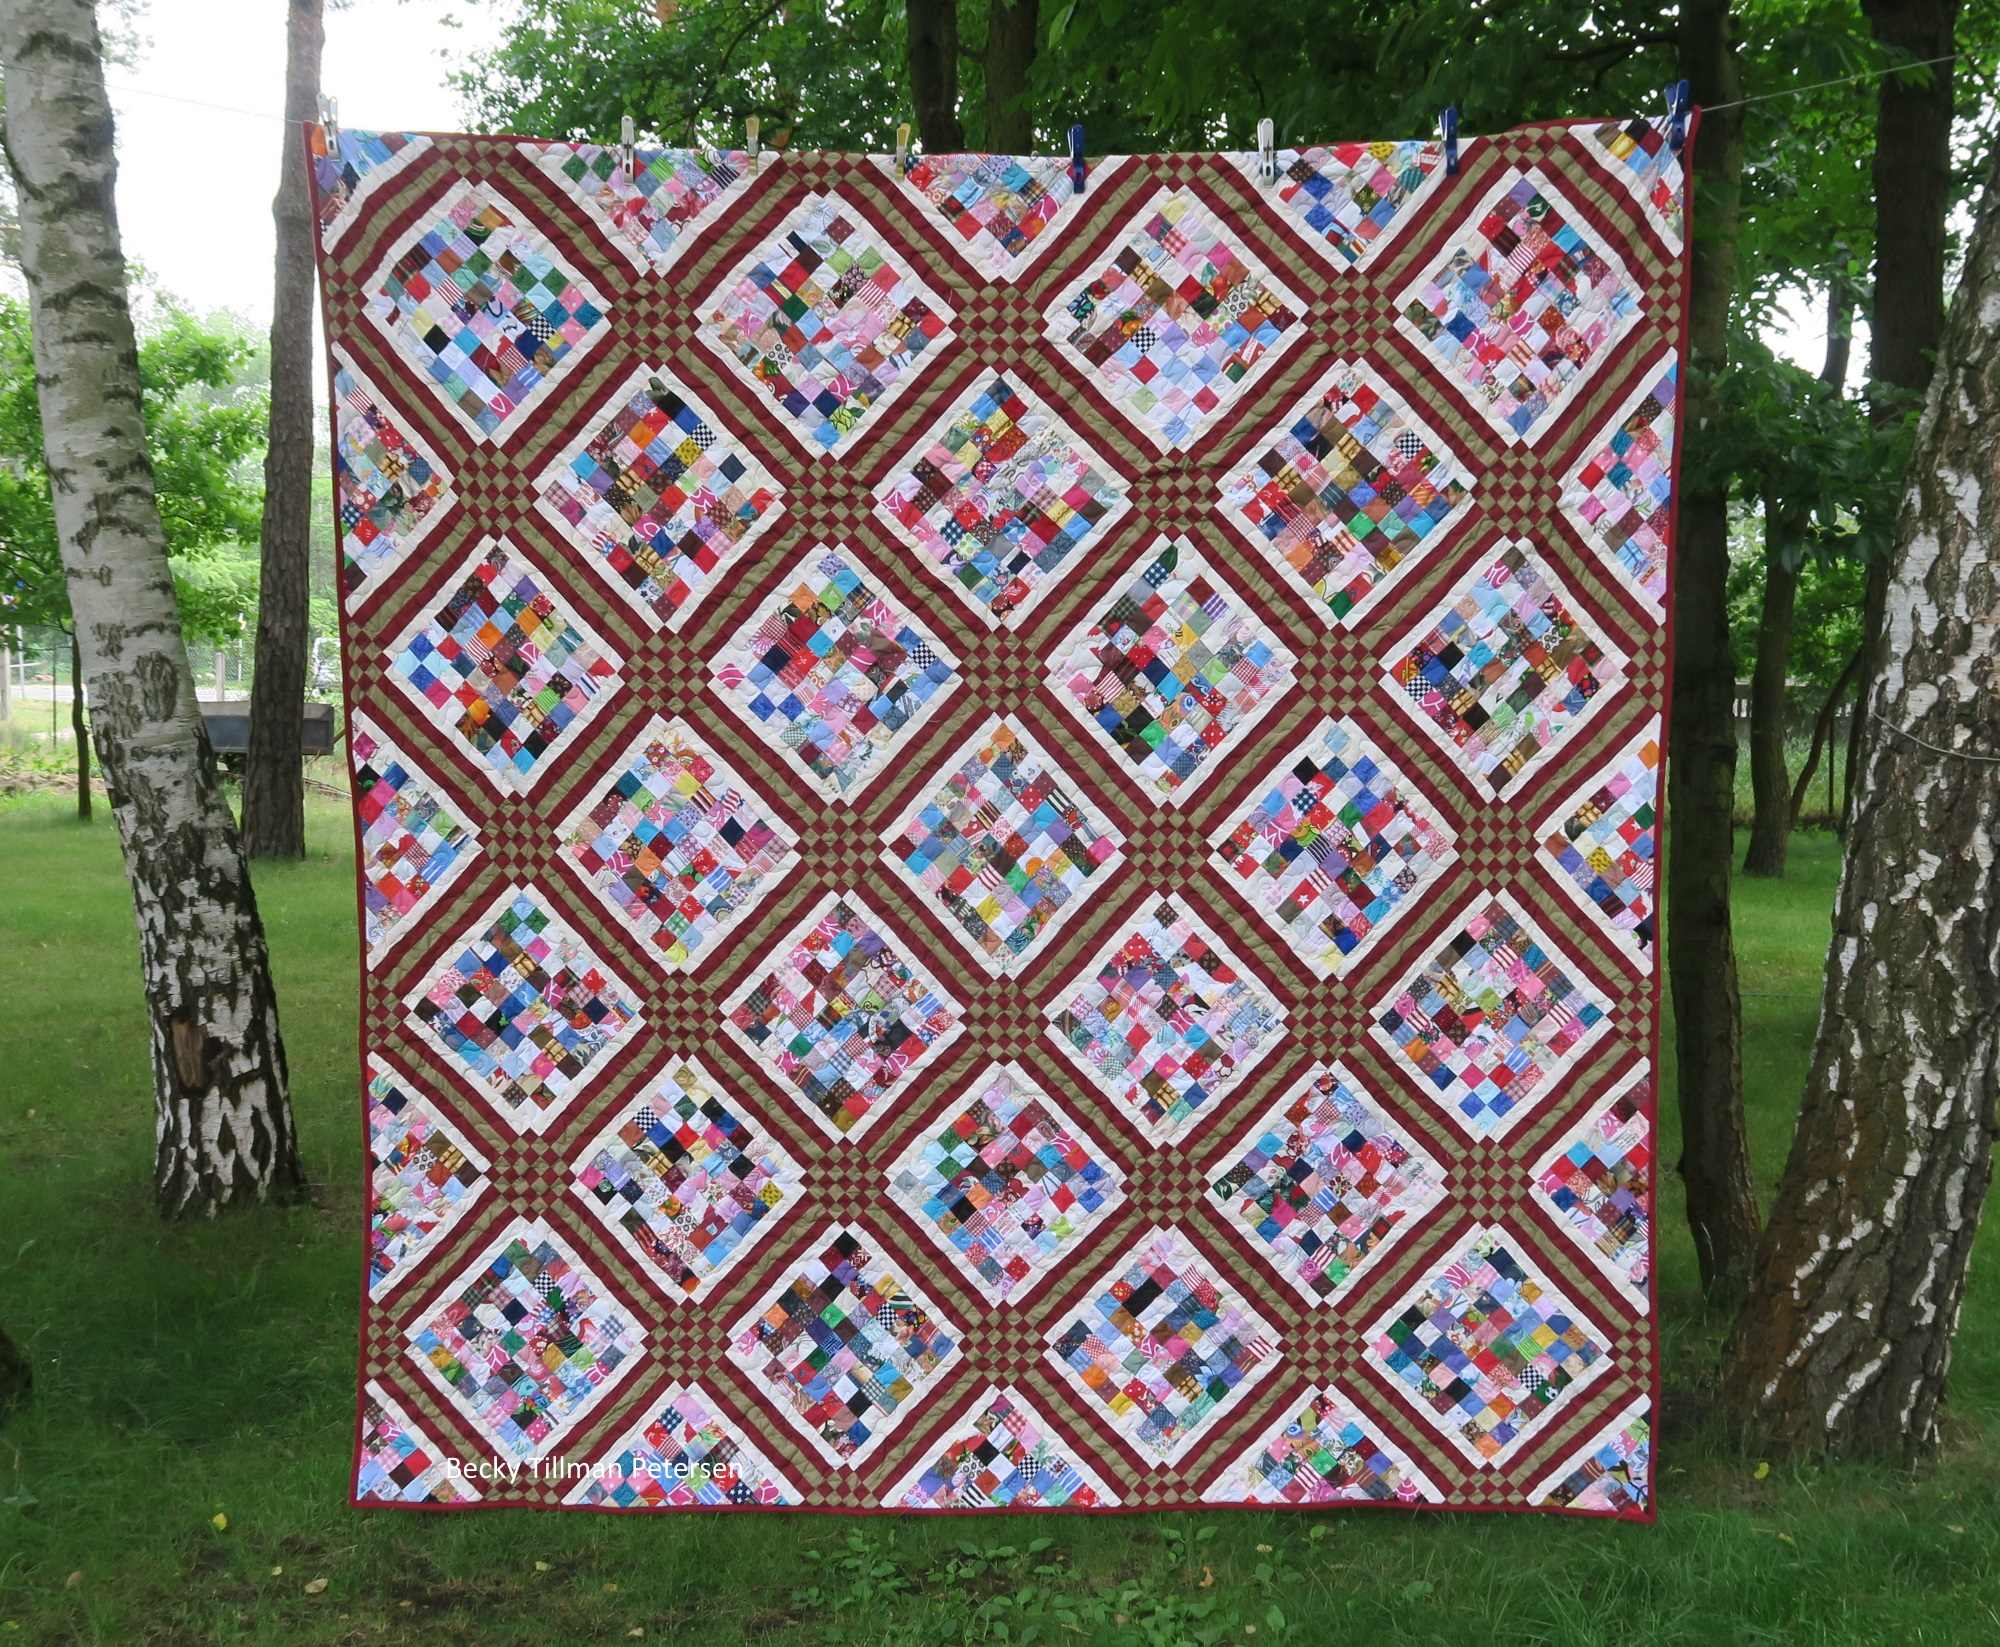 Picture of ice cube quilt, a quilt with burgandy and gold squares filled with leftover quit fabric squares